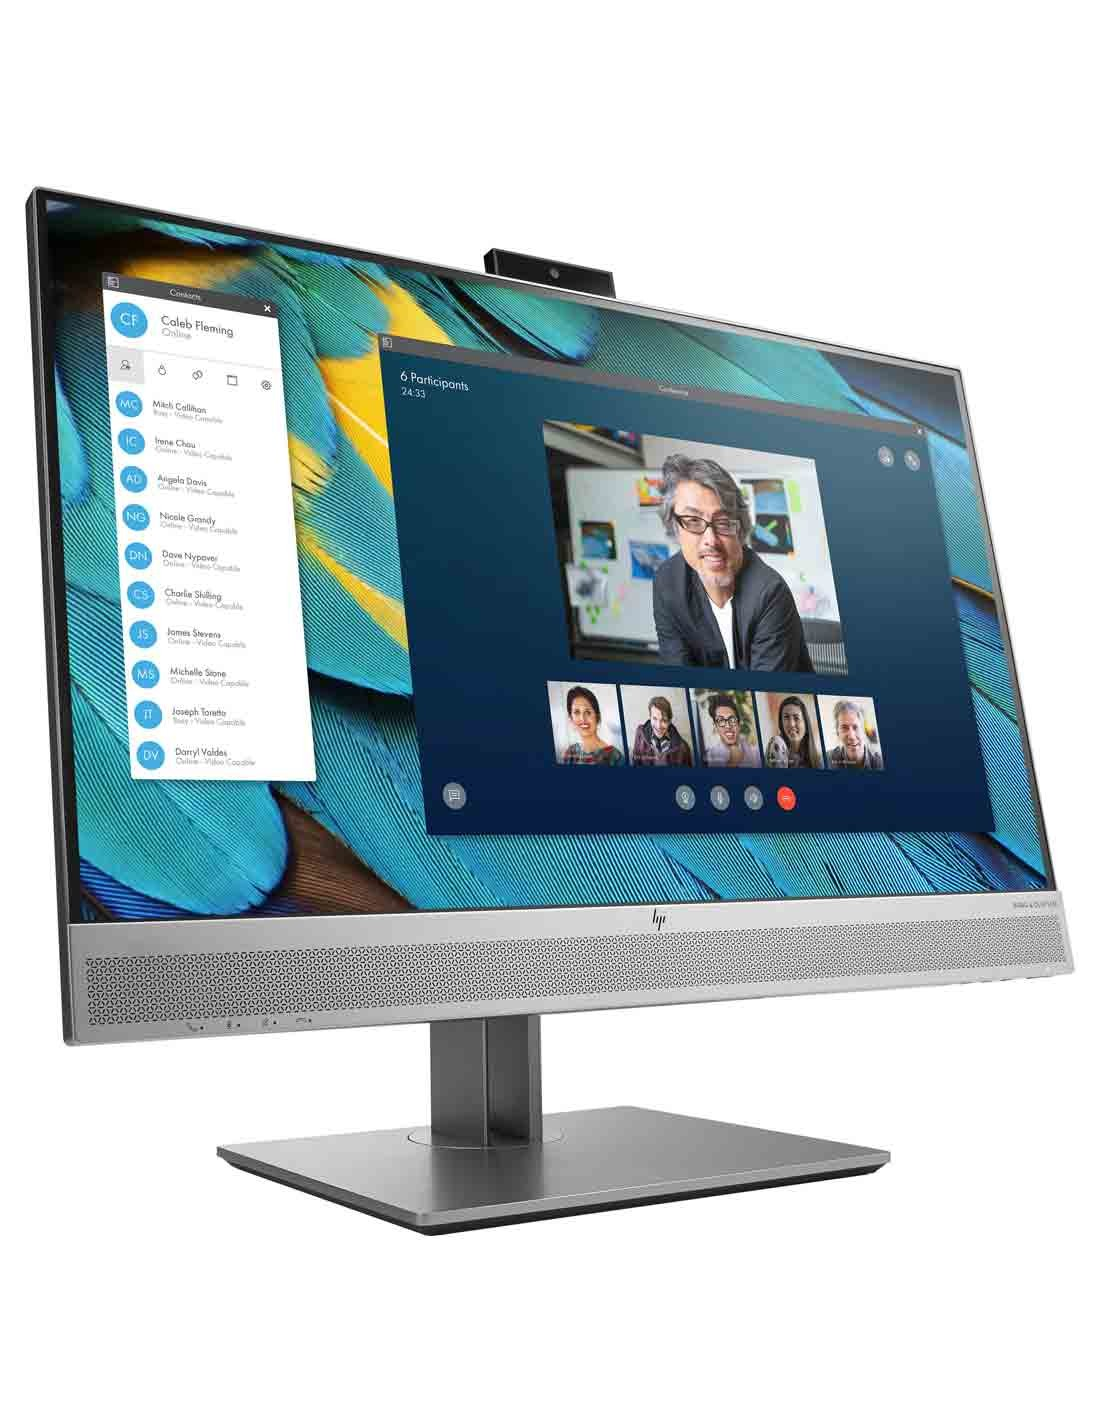 HP EliteDisplay E243m 23.8-inch Monitor at the cheapest price and fast free delivery in Dubai